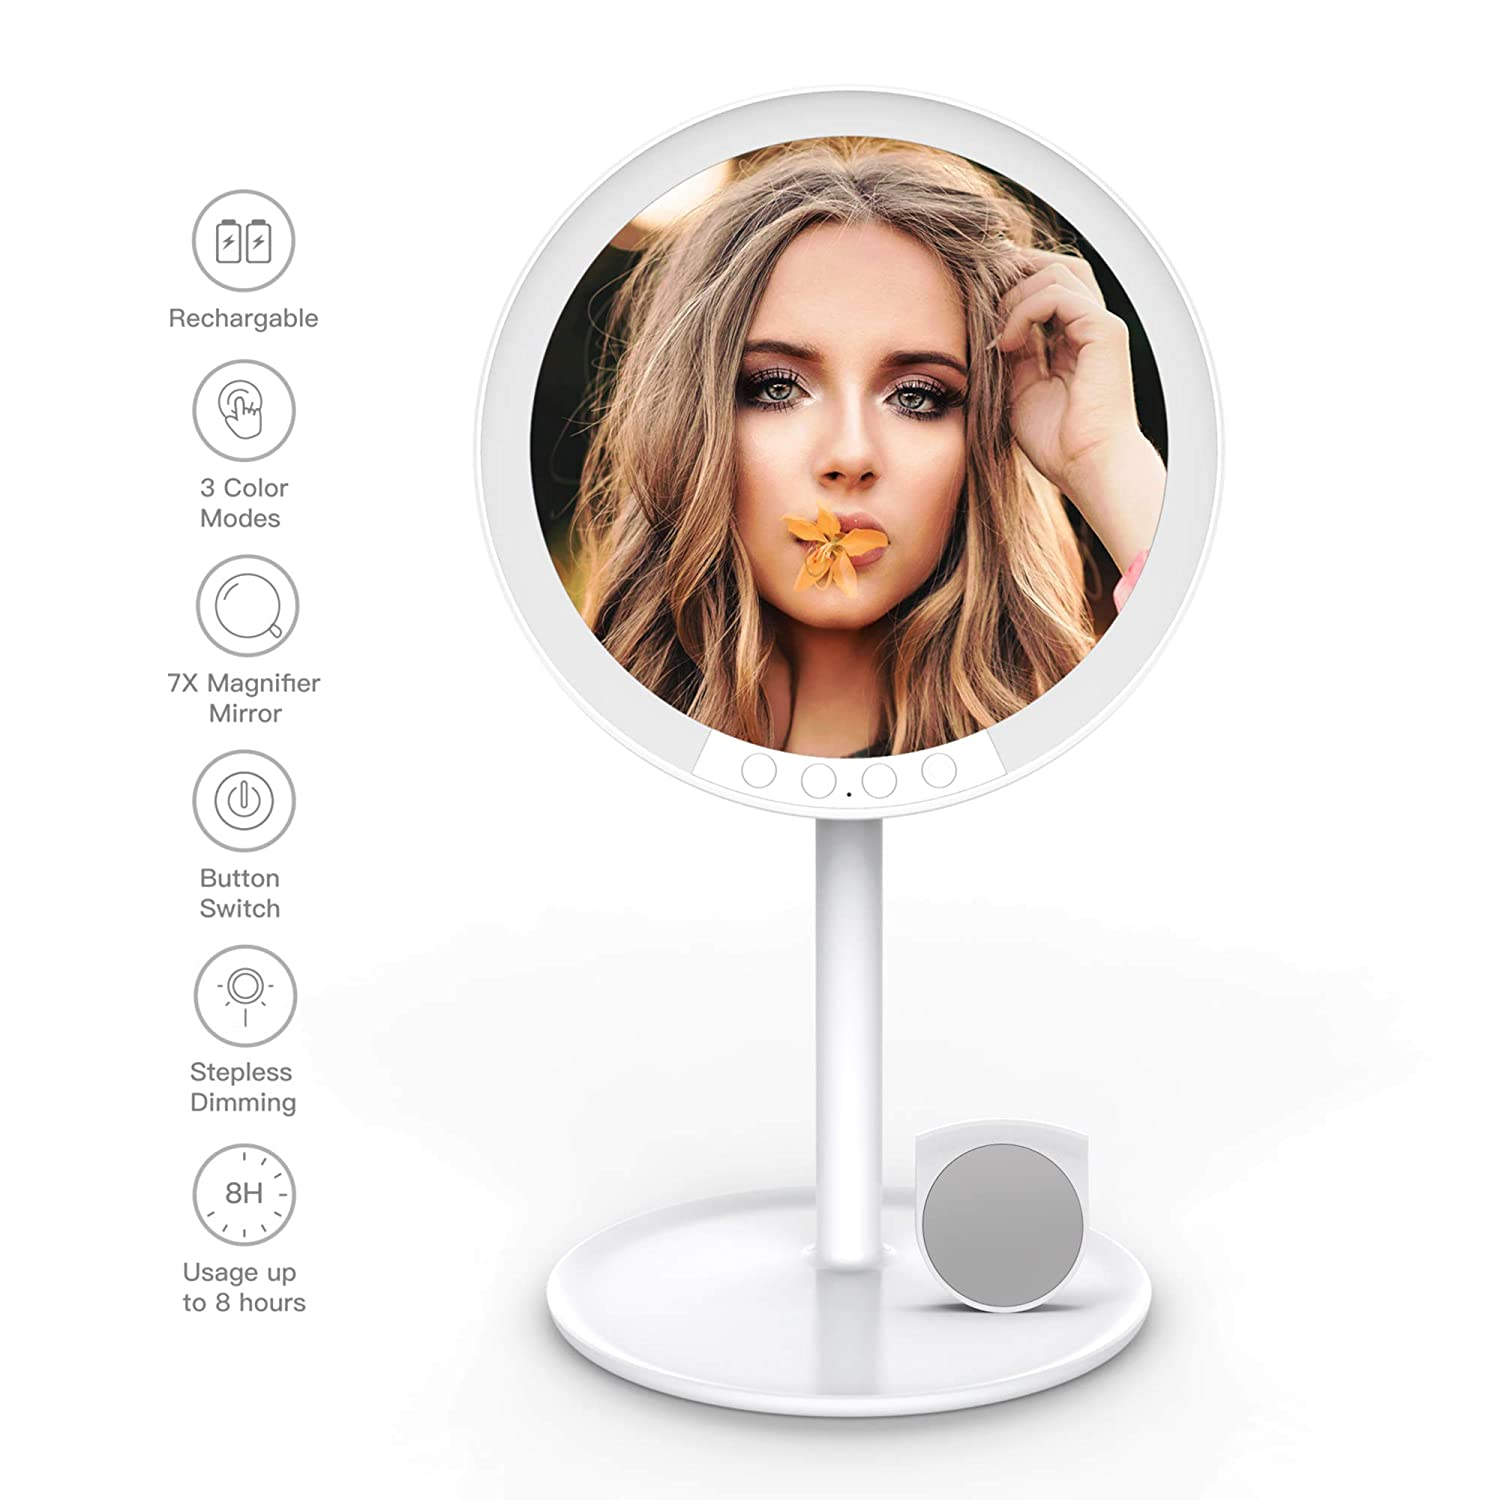 YOUKOYI Makeup Vanity Mirror with Lights – 3 Color Modes, Stepless Dimming, Rechargeable 7-Inch Professional Mirror with 66 LEDs, 7X Magnifying, Adjustable Angle Portable Tabletop Cosmetic Mirror